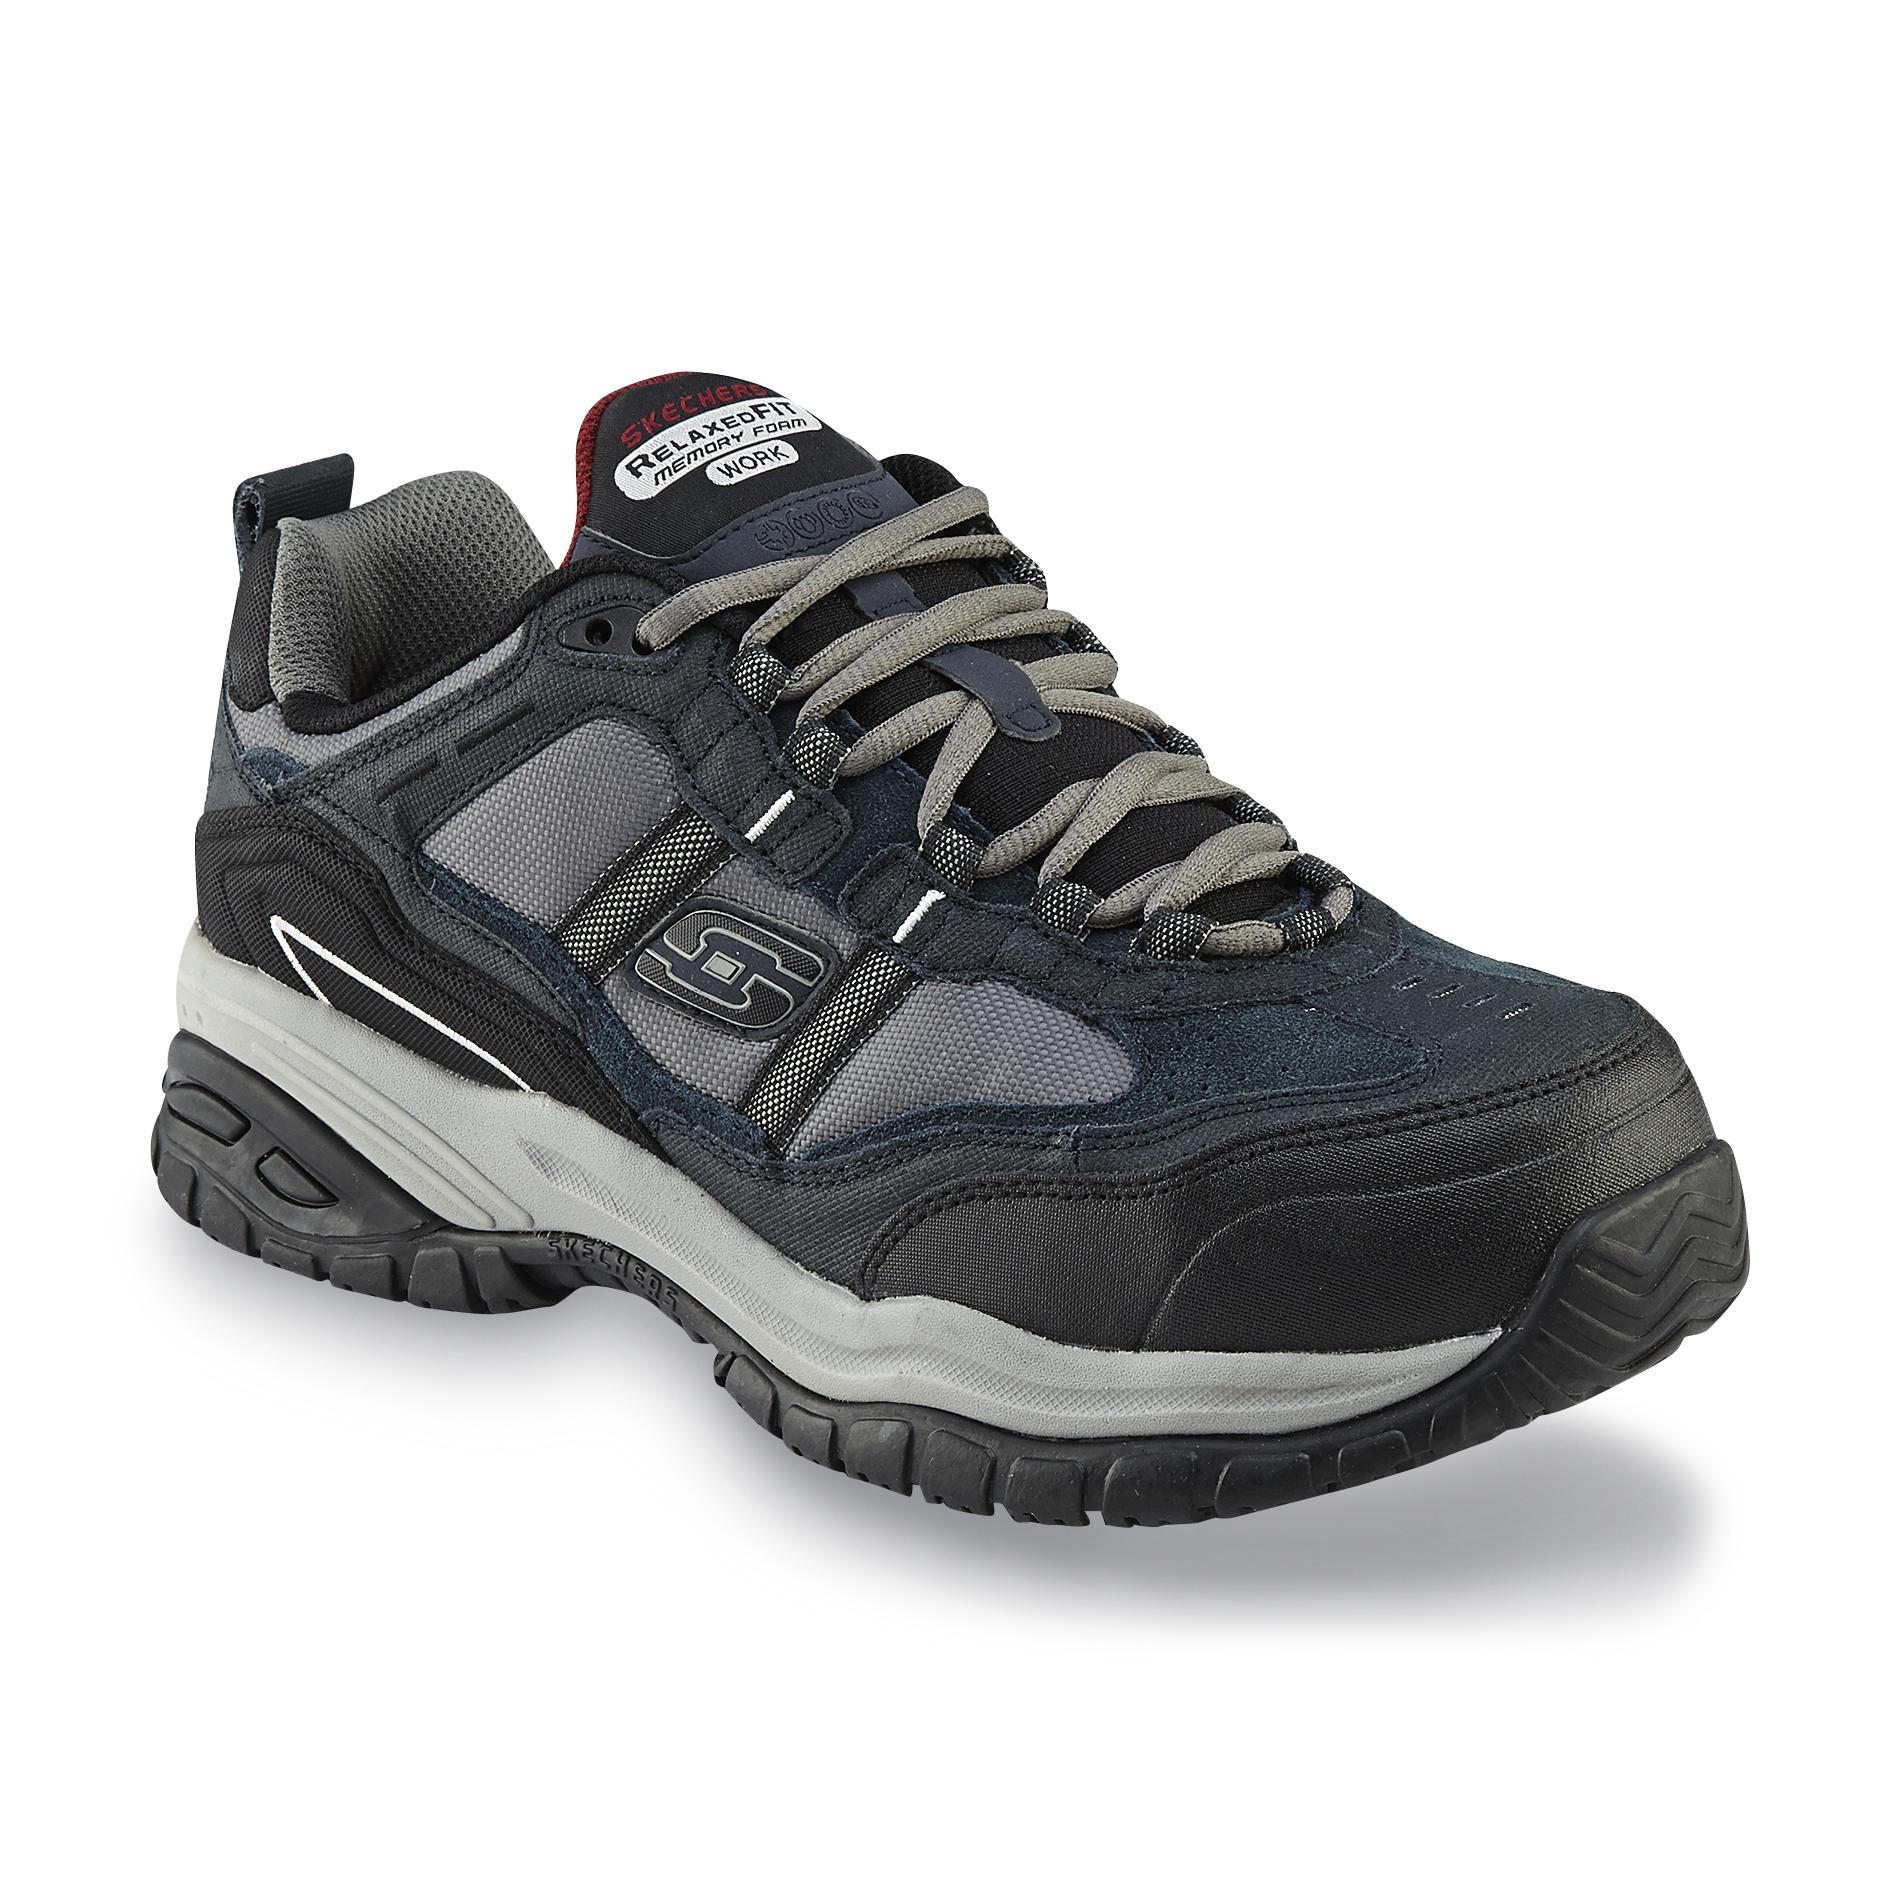 Skechers Grinnel Relaxed Fit ... Men's Work Shoes